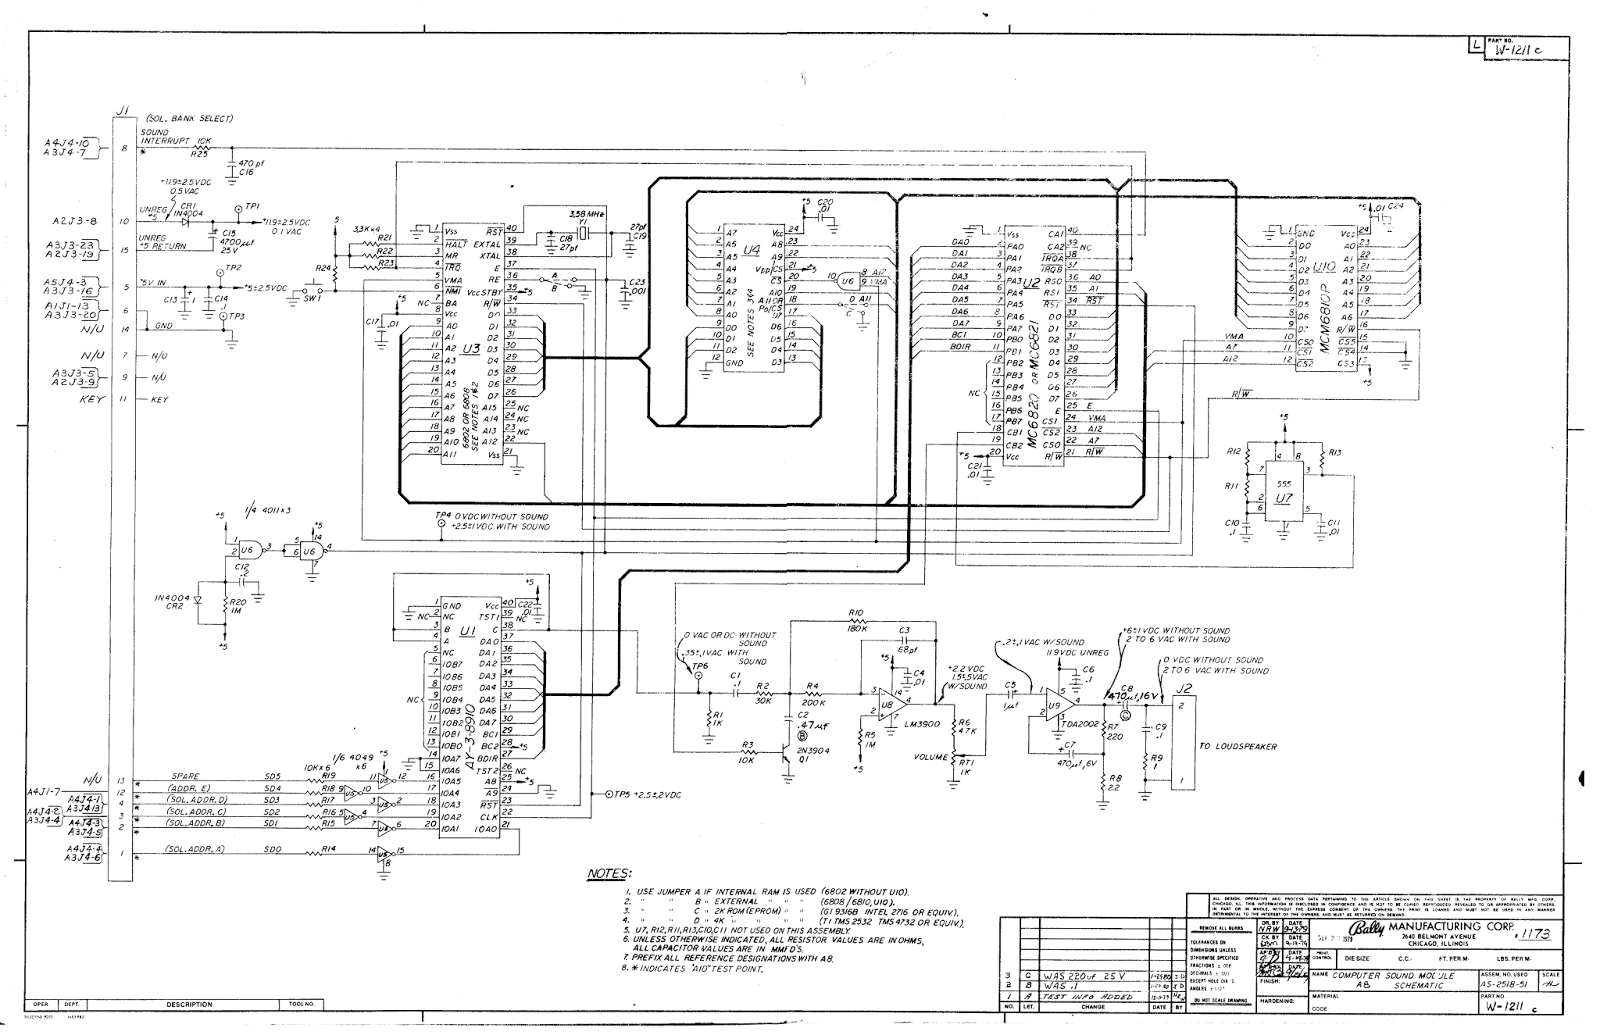 Schematic of the AS-2518-51 Sound Module